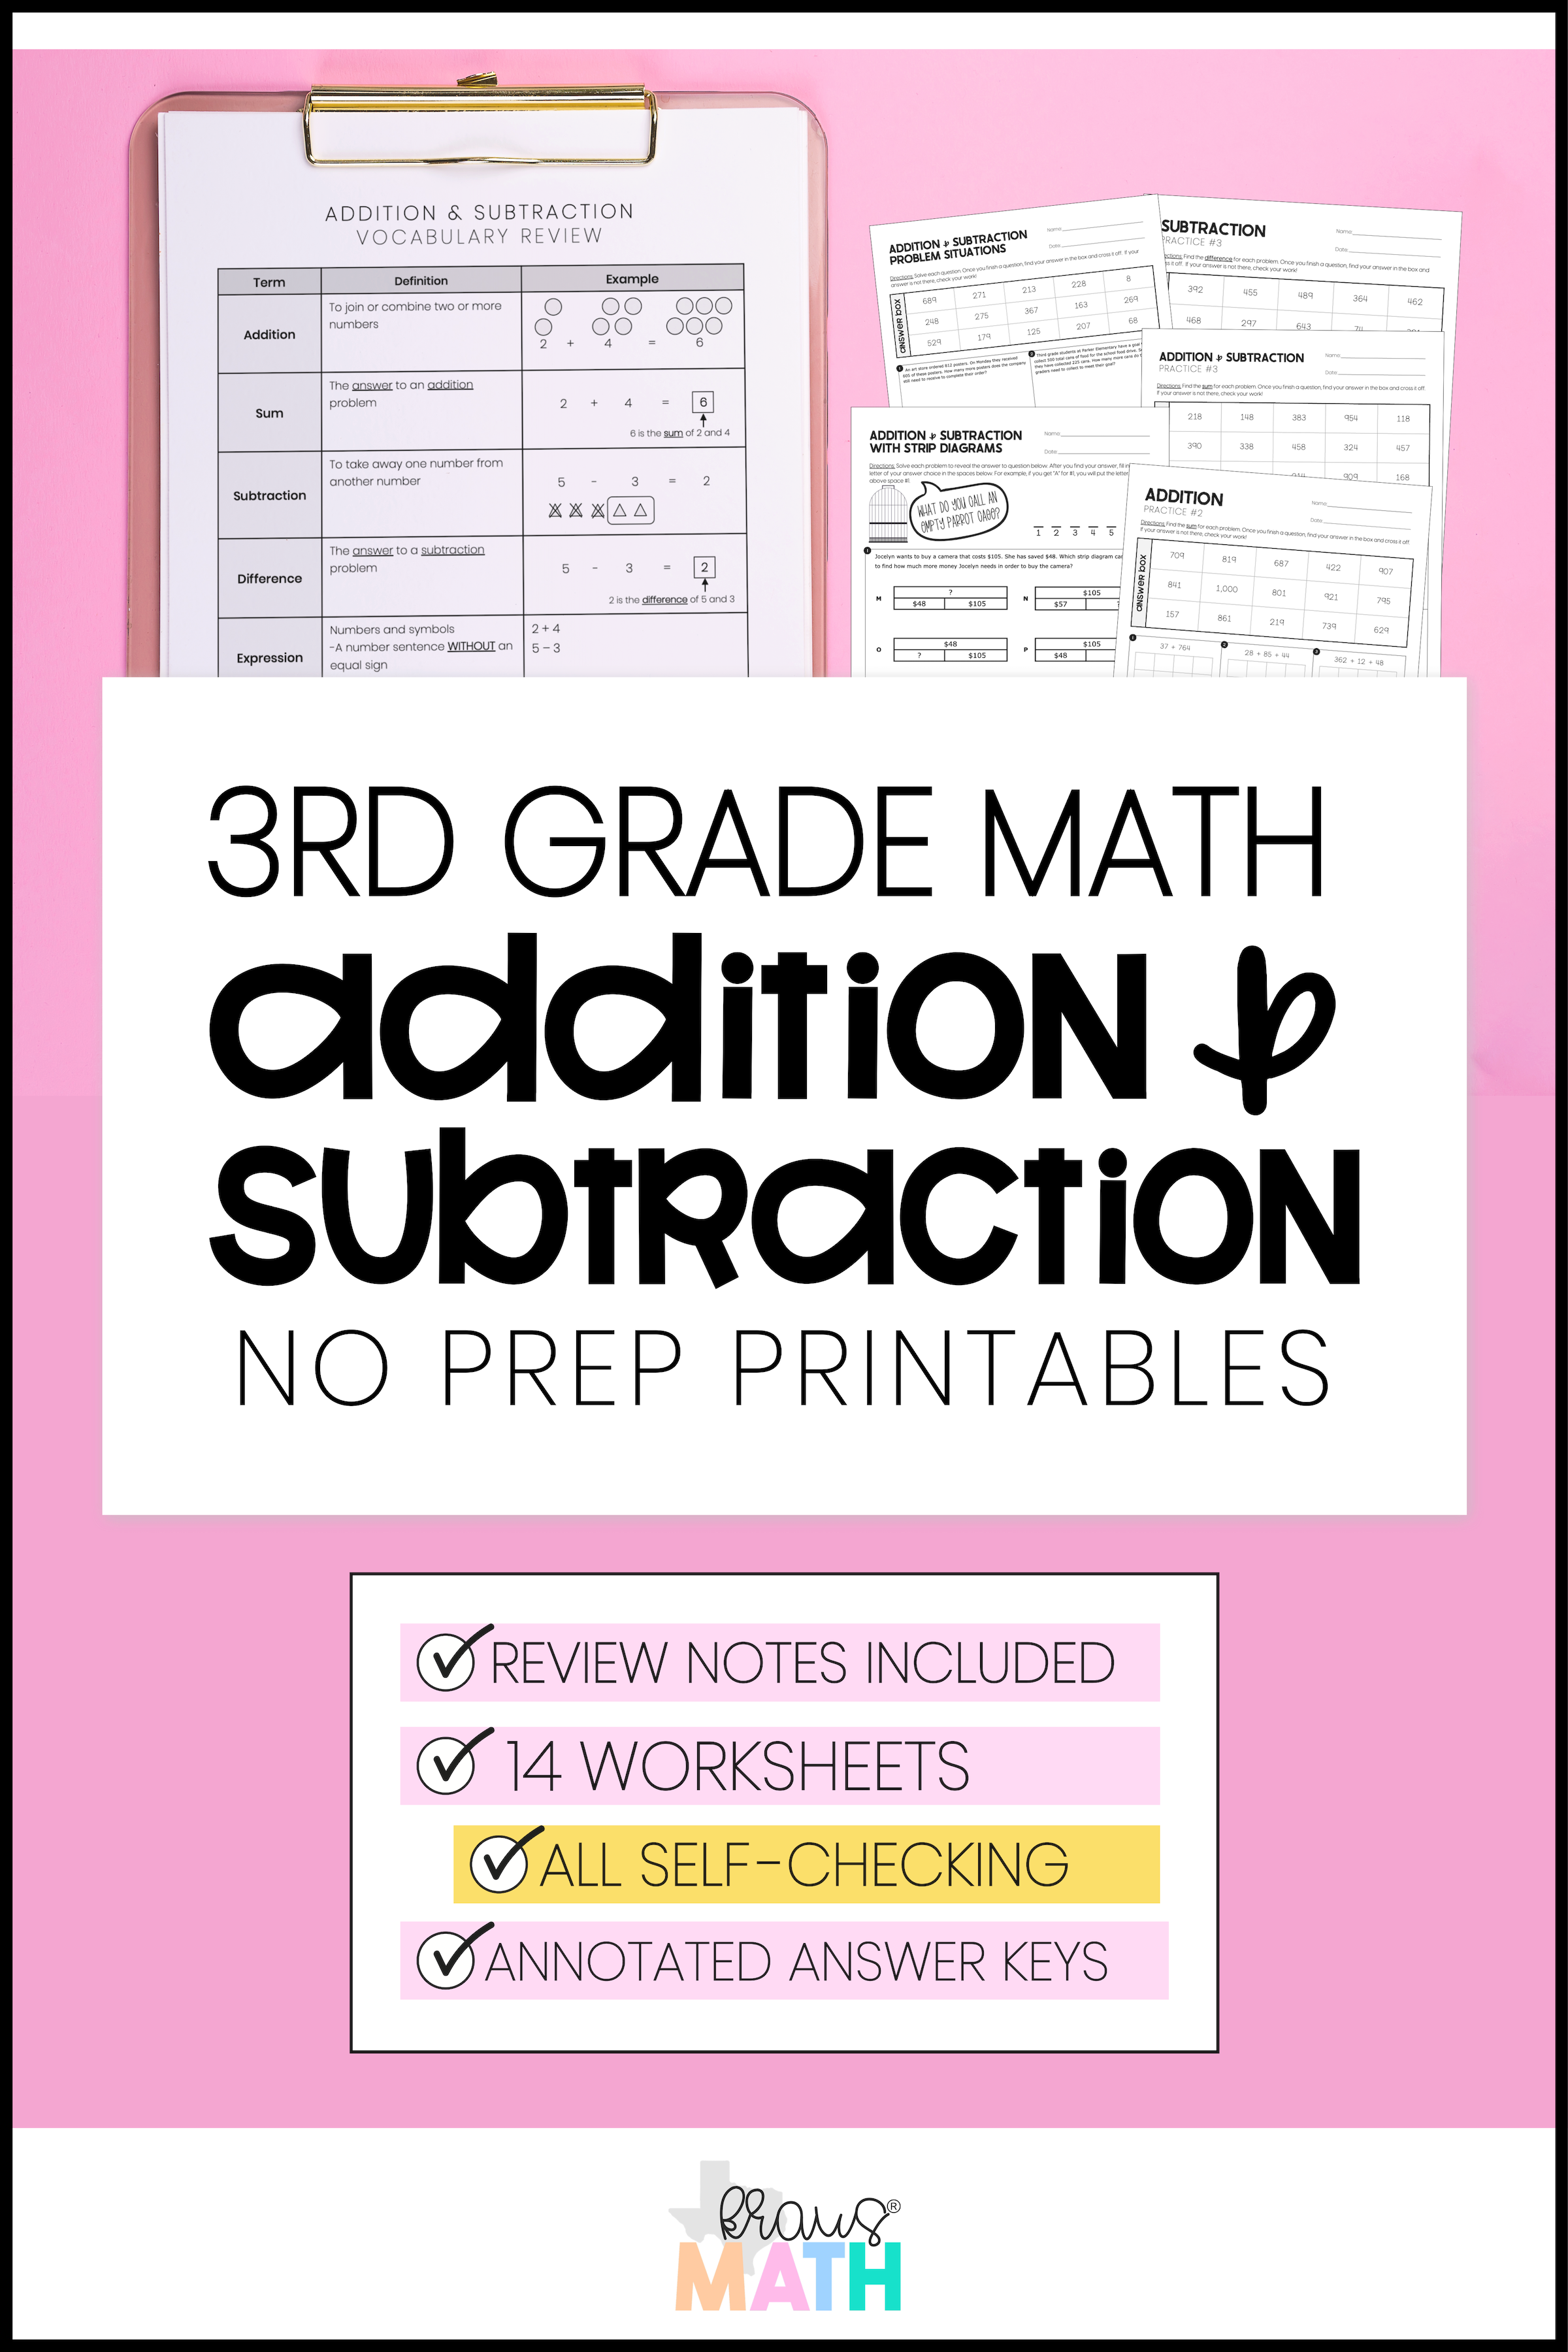 3rd Grade Math Packet 2 Addition Subtraction Kraus Math 3rd Grade Math Math Packets Math Facts [ 3600 x 2400 Pixel ]